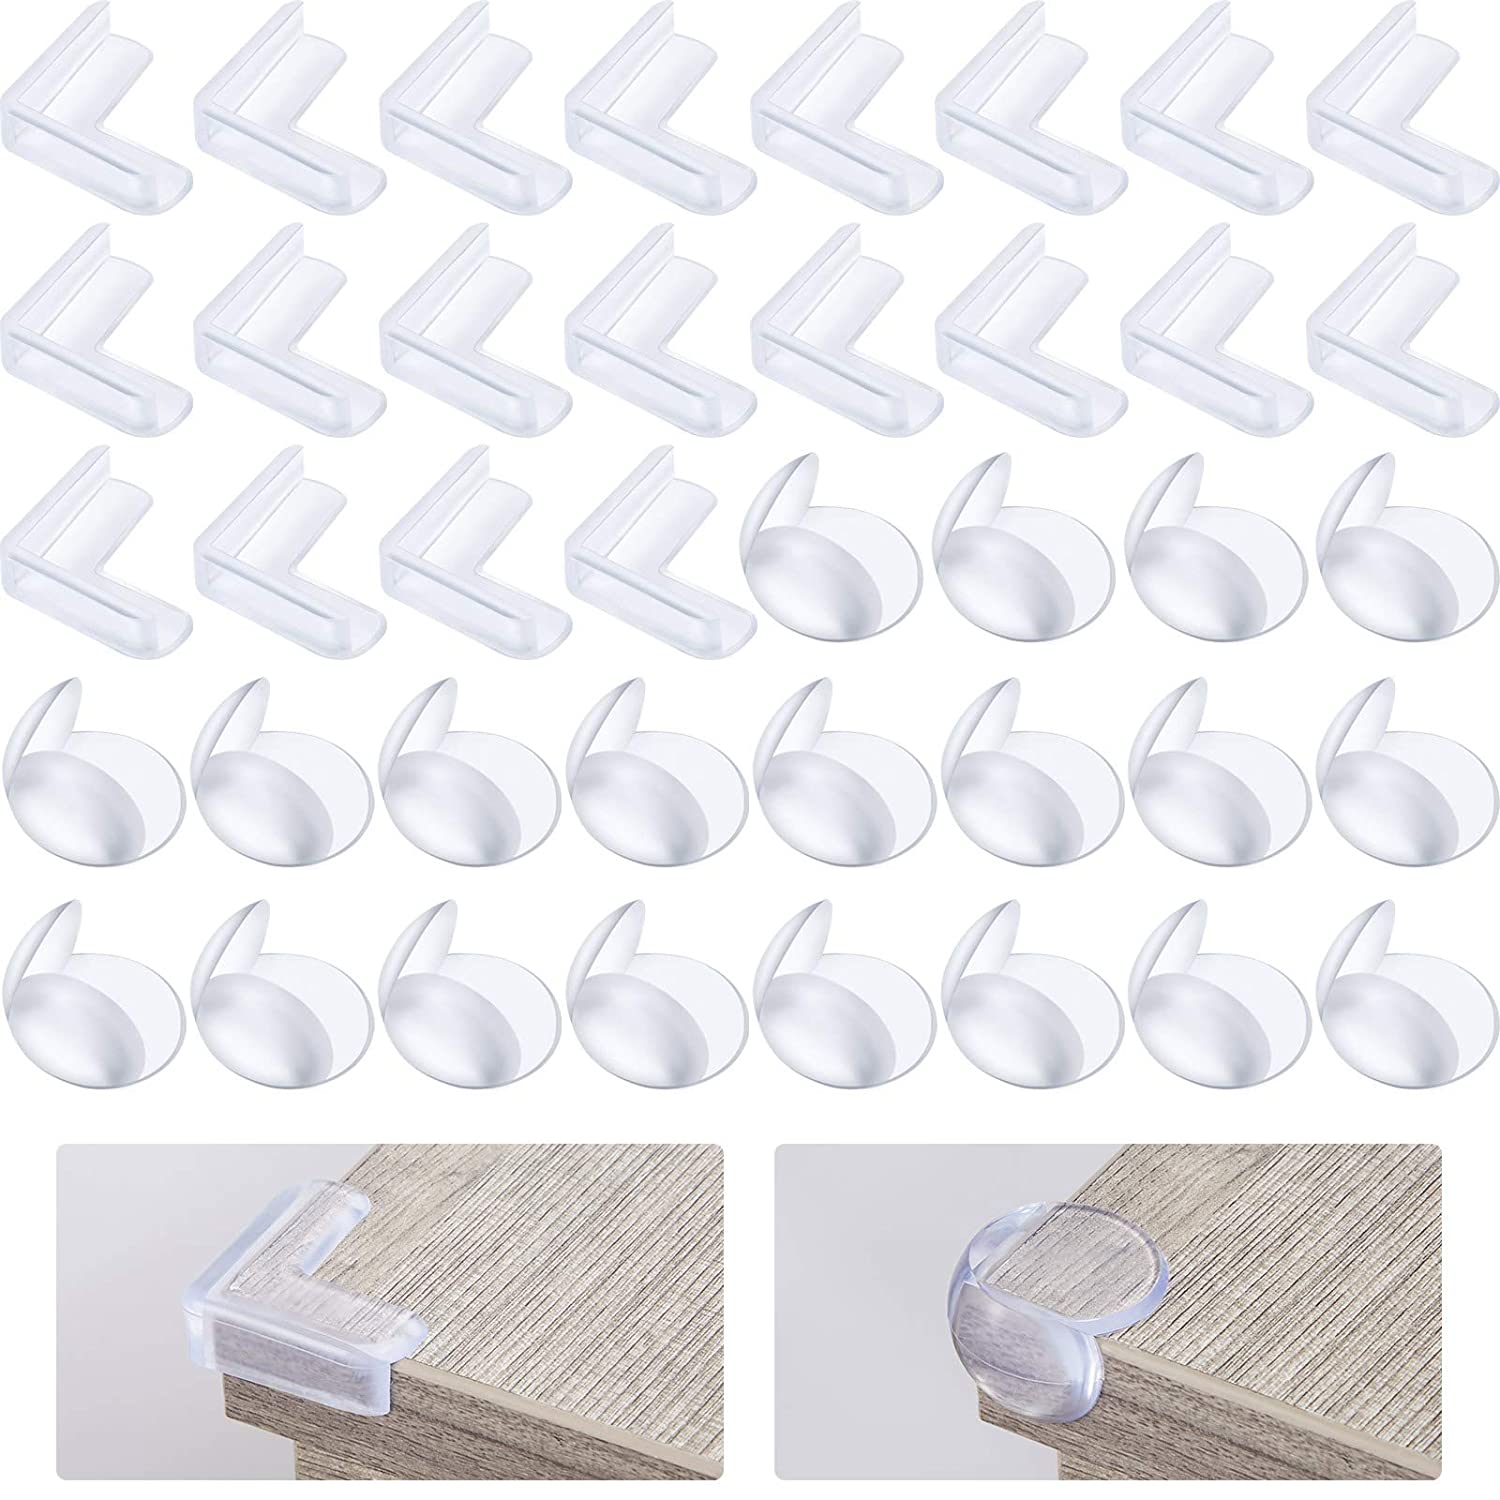 40 Pieces Clear Corner Guards Corner Protector Edge Corner Bumpers Baby Proofing Furniture Cabinet Cushion Corner Edge Protector for Baby Safety (L-Shape and Round)